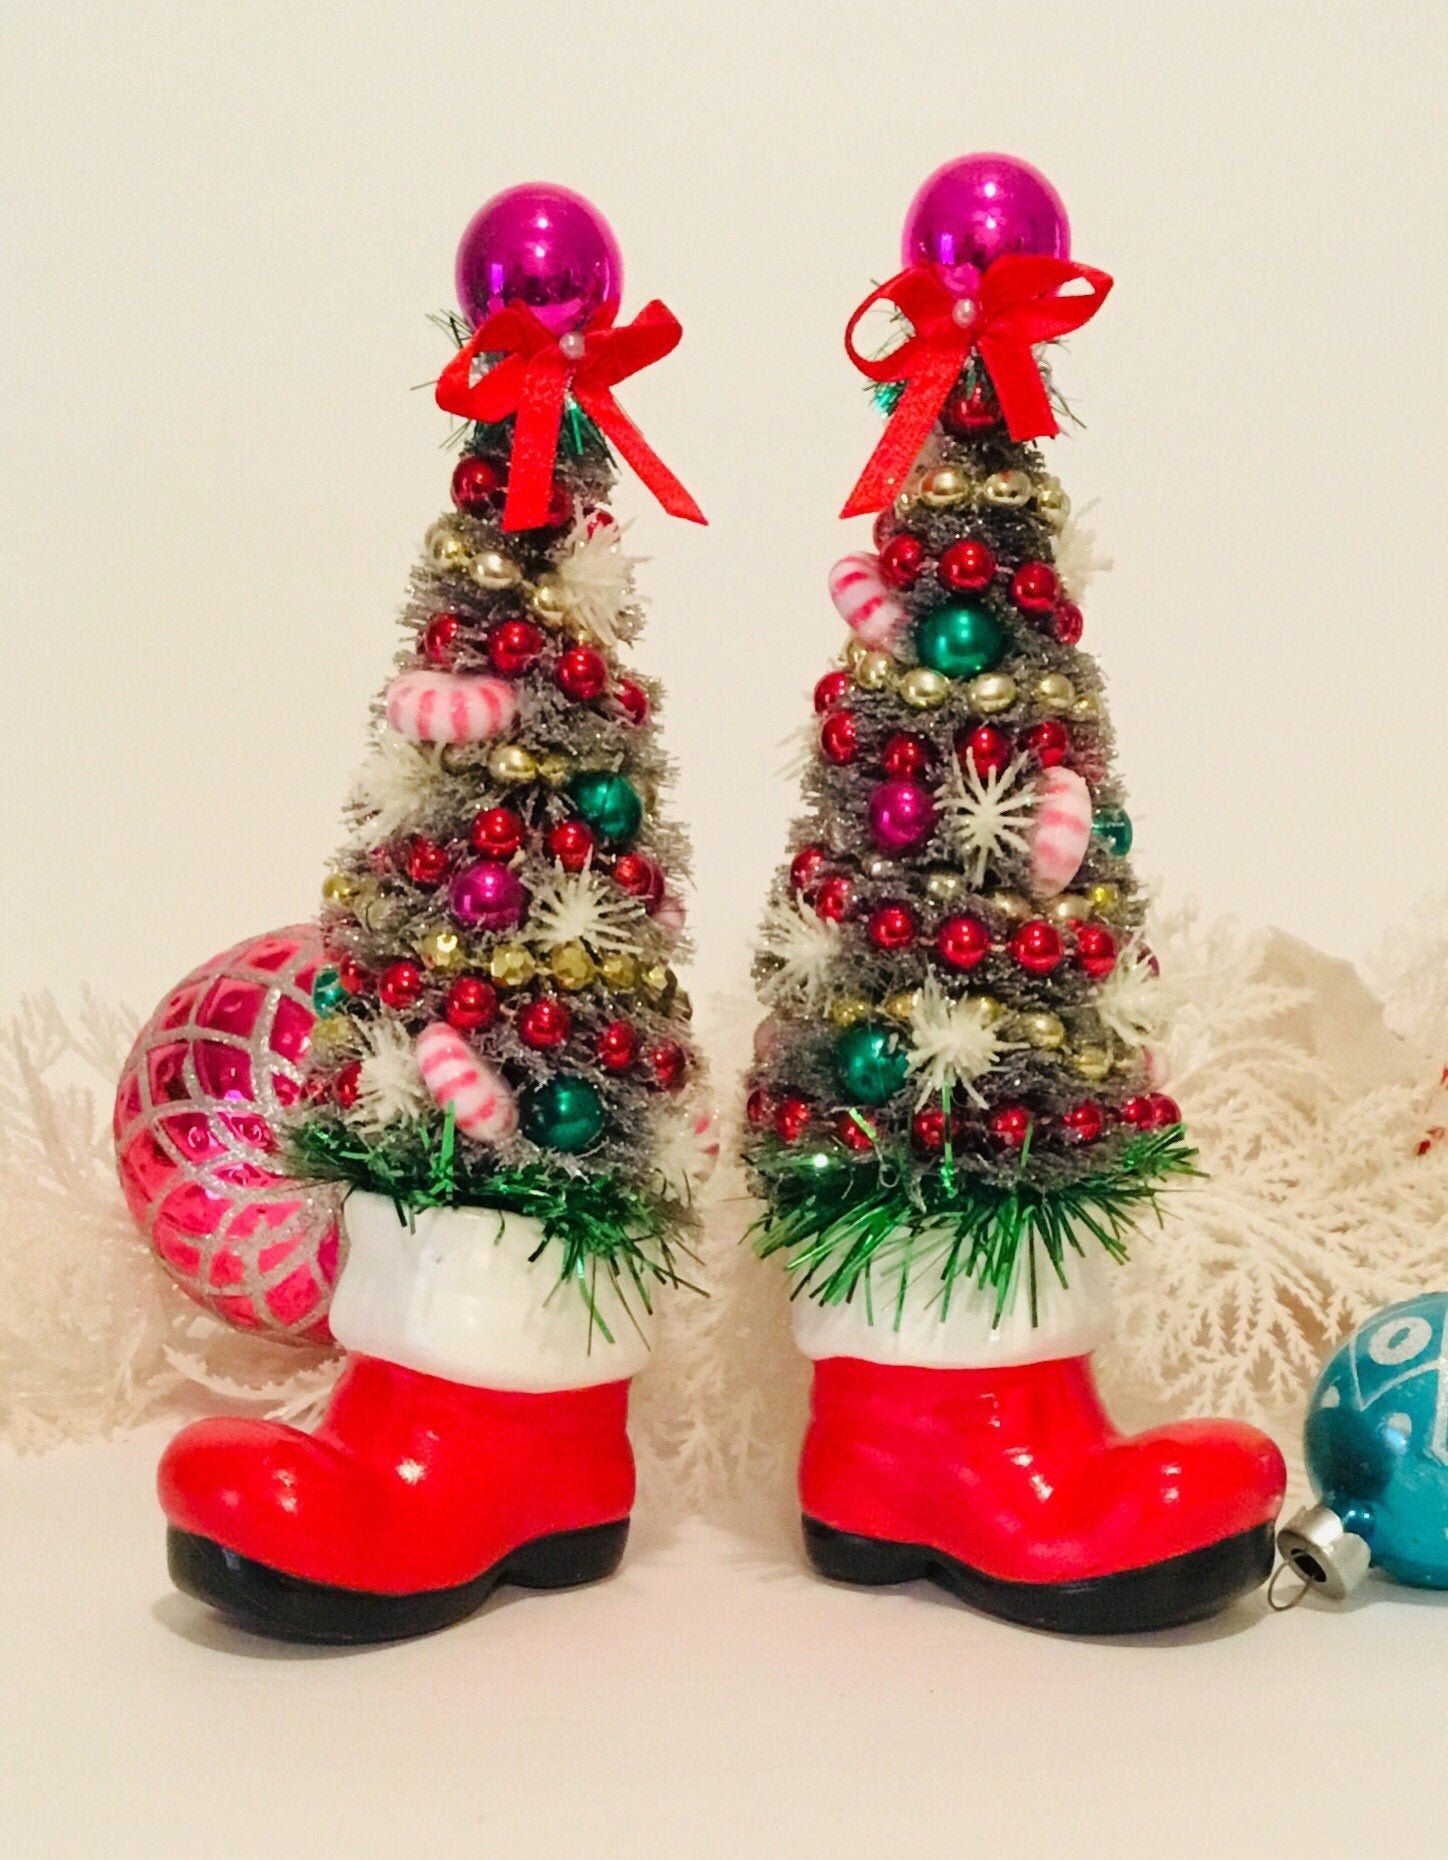 Santa Boot Bottle Brush Trees ~ Pair of Santa Boots, Vintage Santa Boots, Decorated Bottle Brush Tr